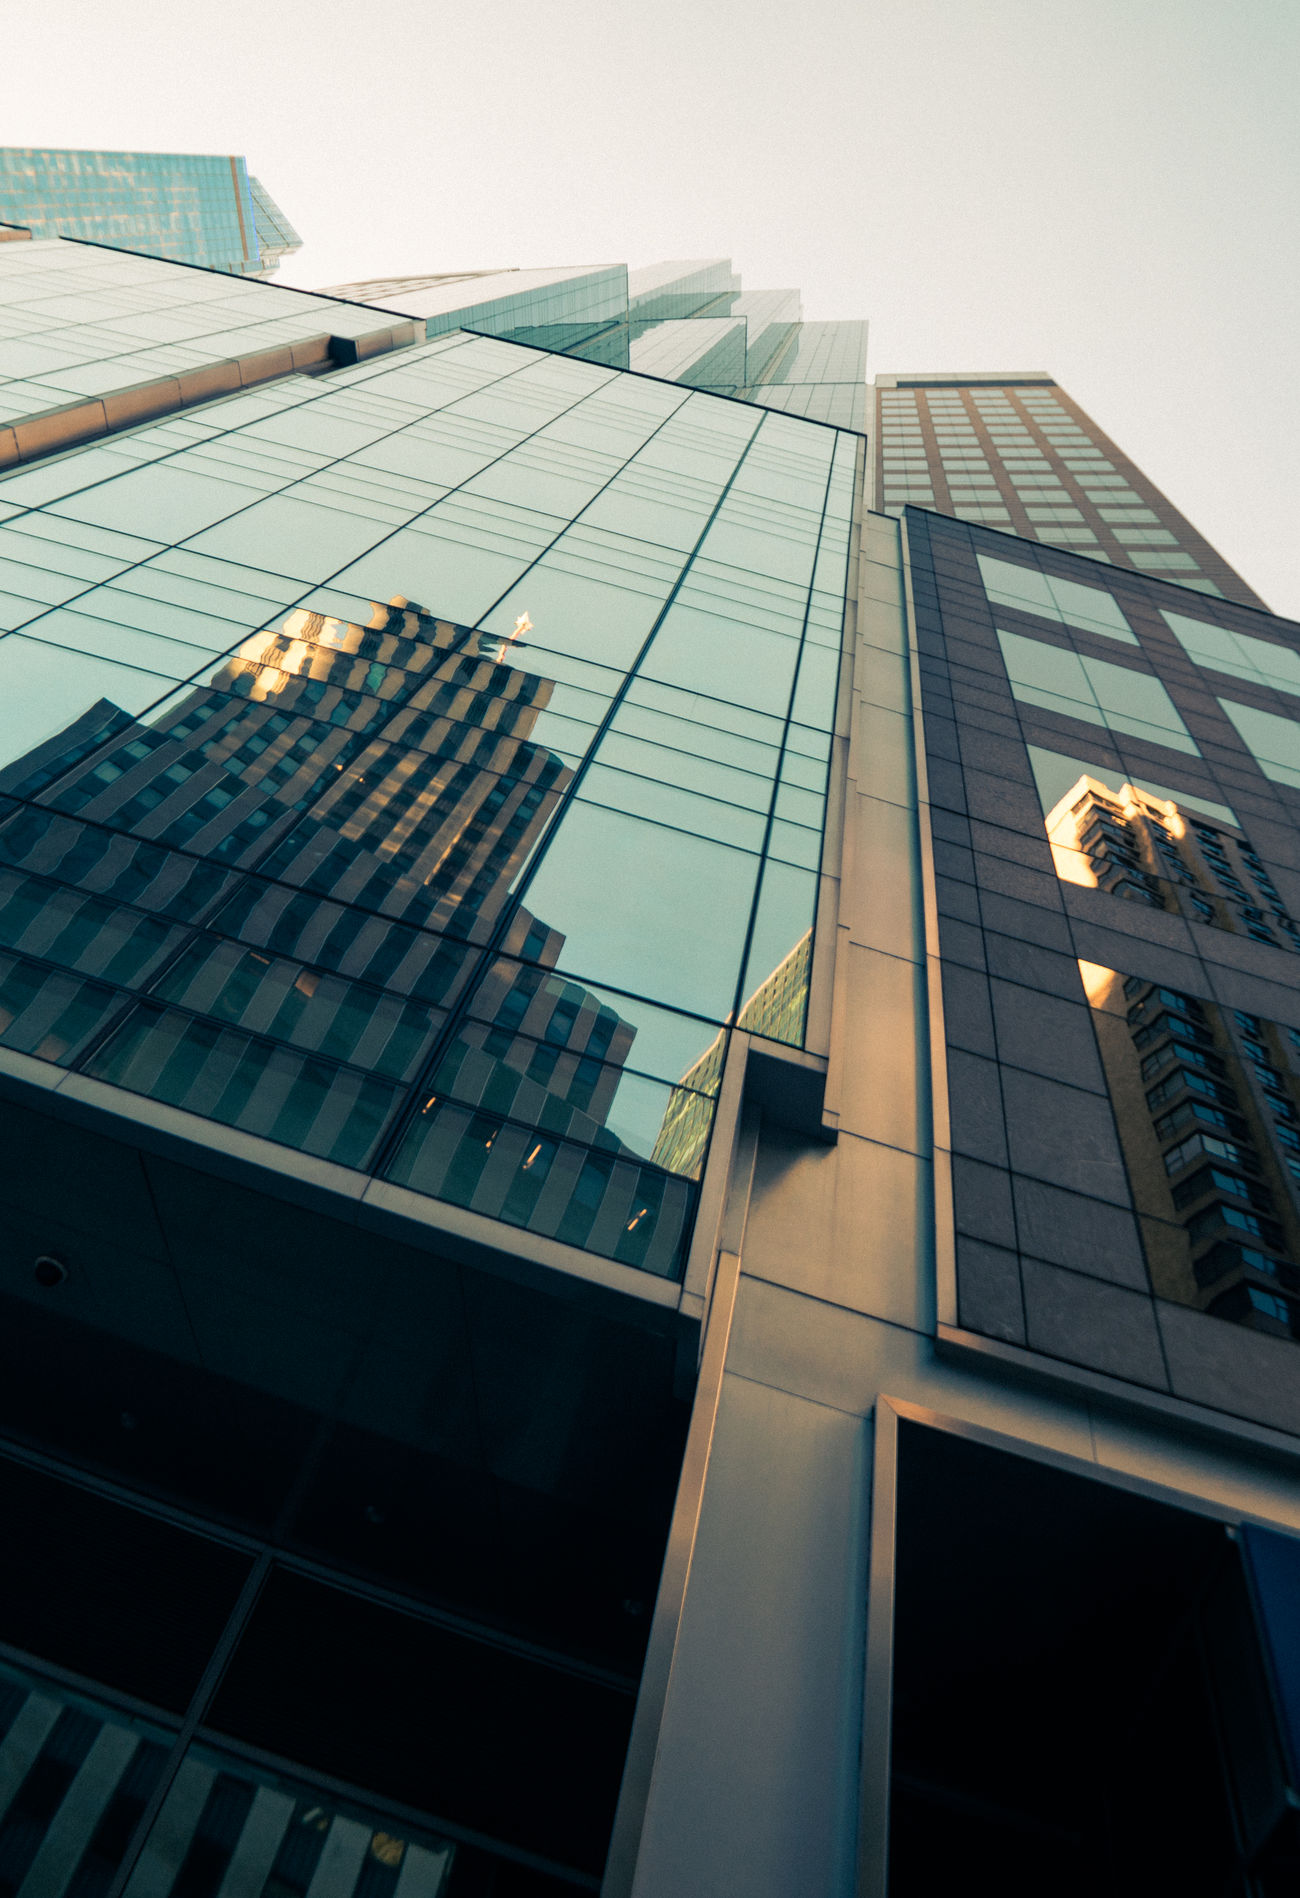 Reflection Architecture Building Exterior Built Structure City Corporate Business Day Growth Low Angle View Modern No People Outdoors Reflection Sky Skyscraper Tall Window Window Washer